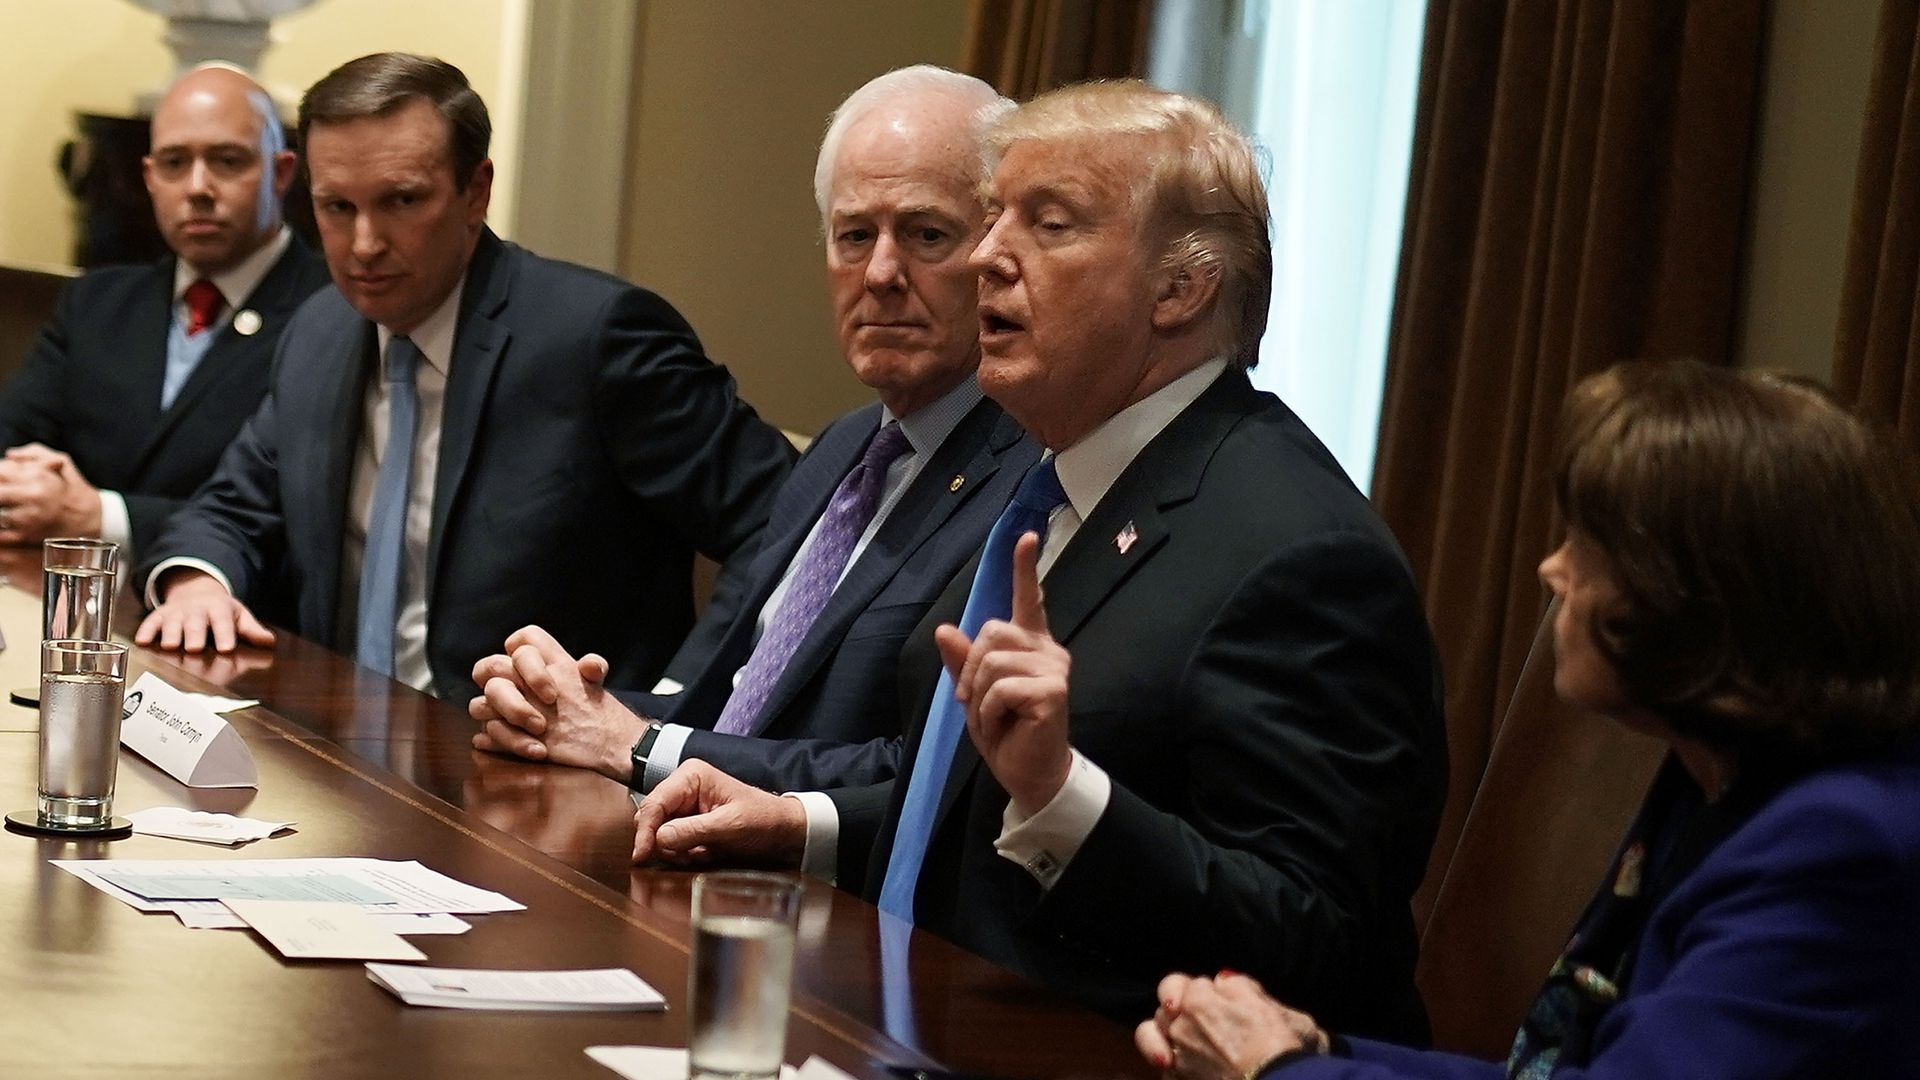 President Trump meeting with lawmakers on gun policy.